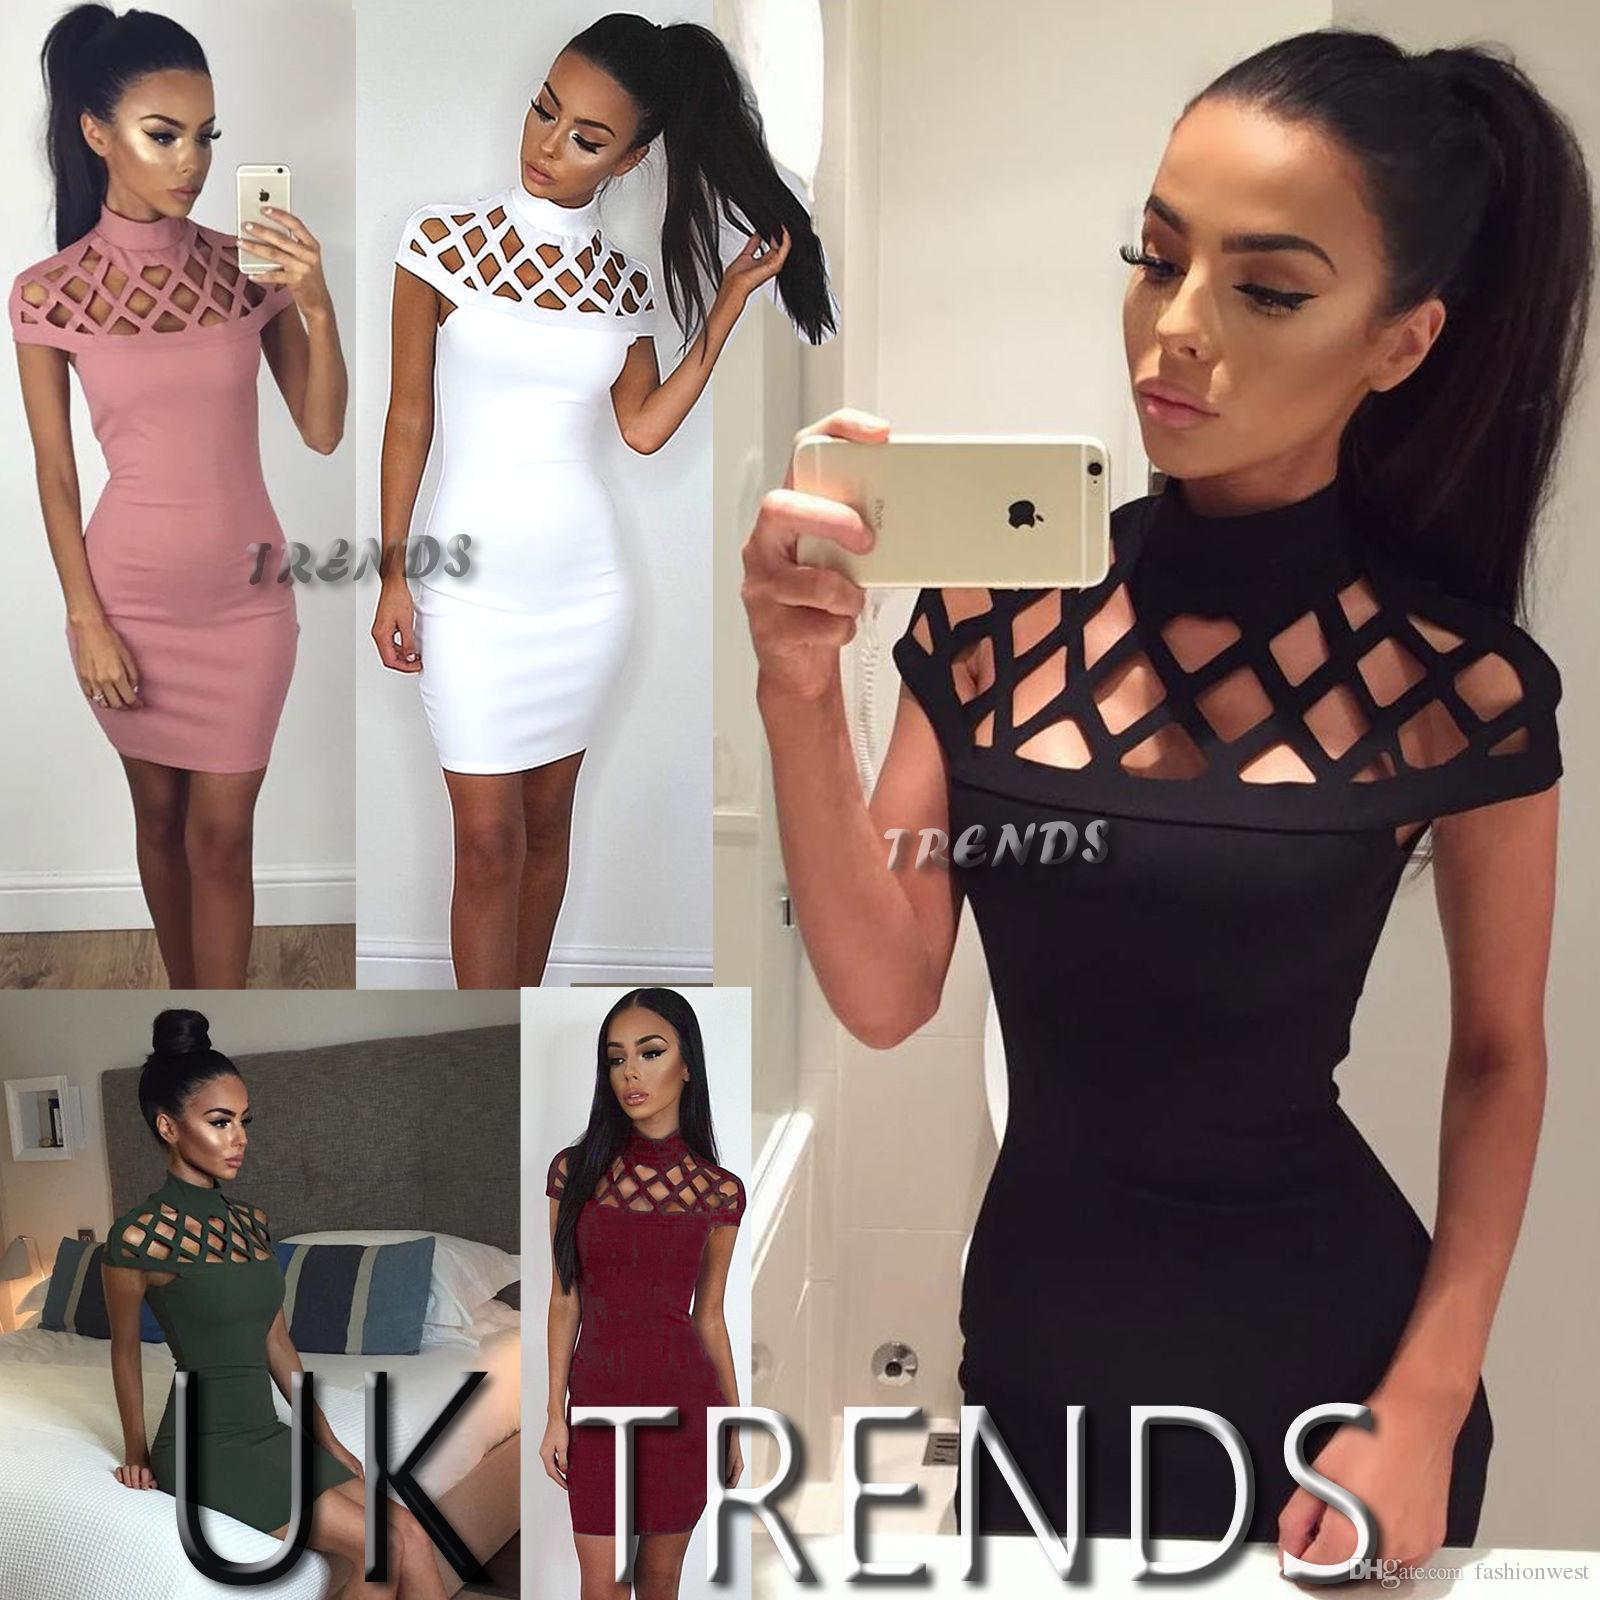 a230f45e7a55a6 2019 UK Womens Choker High Neck Bodycon Ladies Caged Sleeves Mini Dress  Size 6 14 From Fashionwest